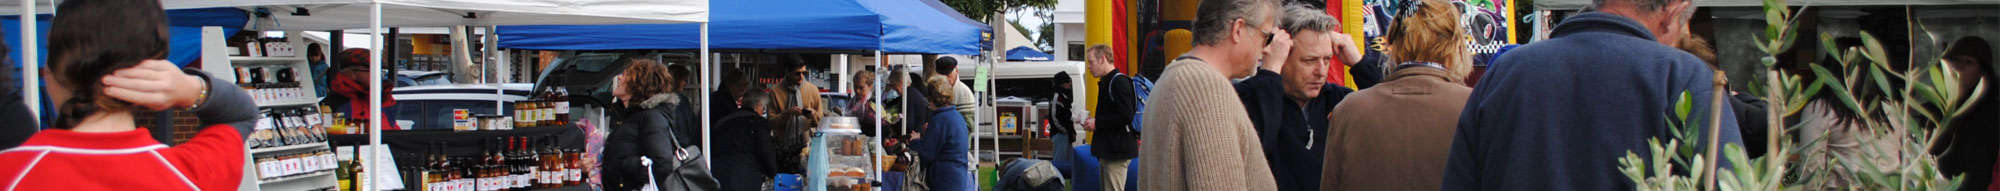 lakes entrance markets